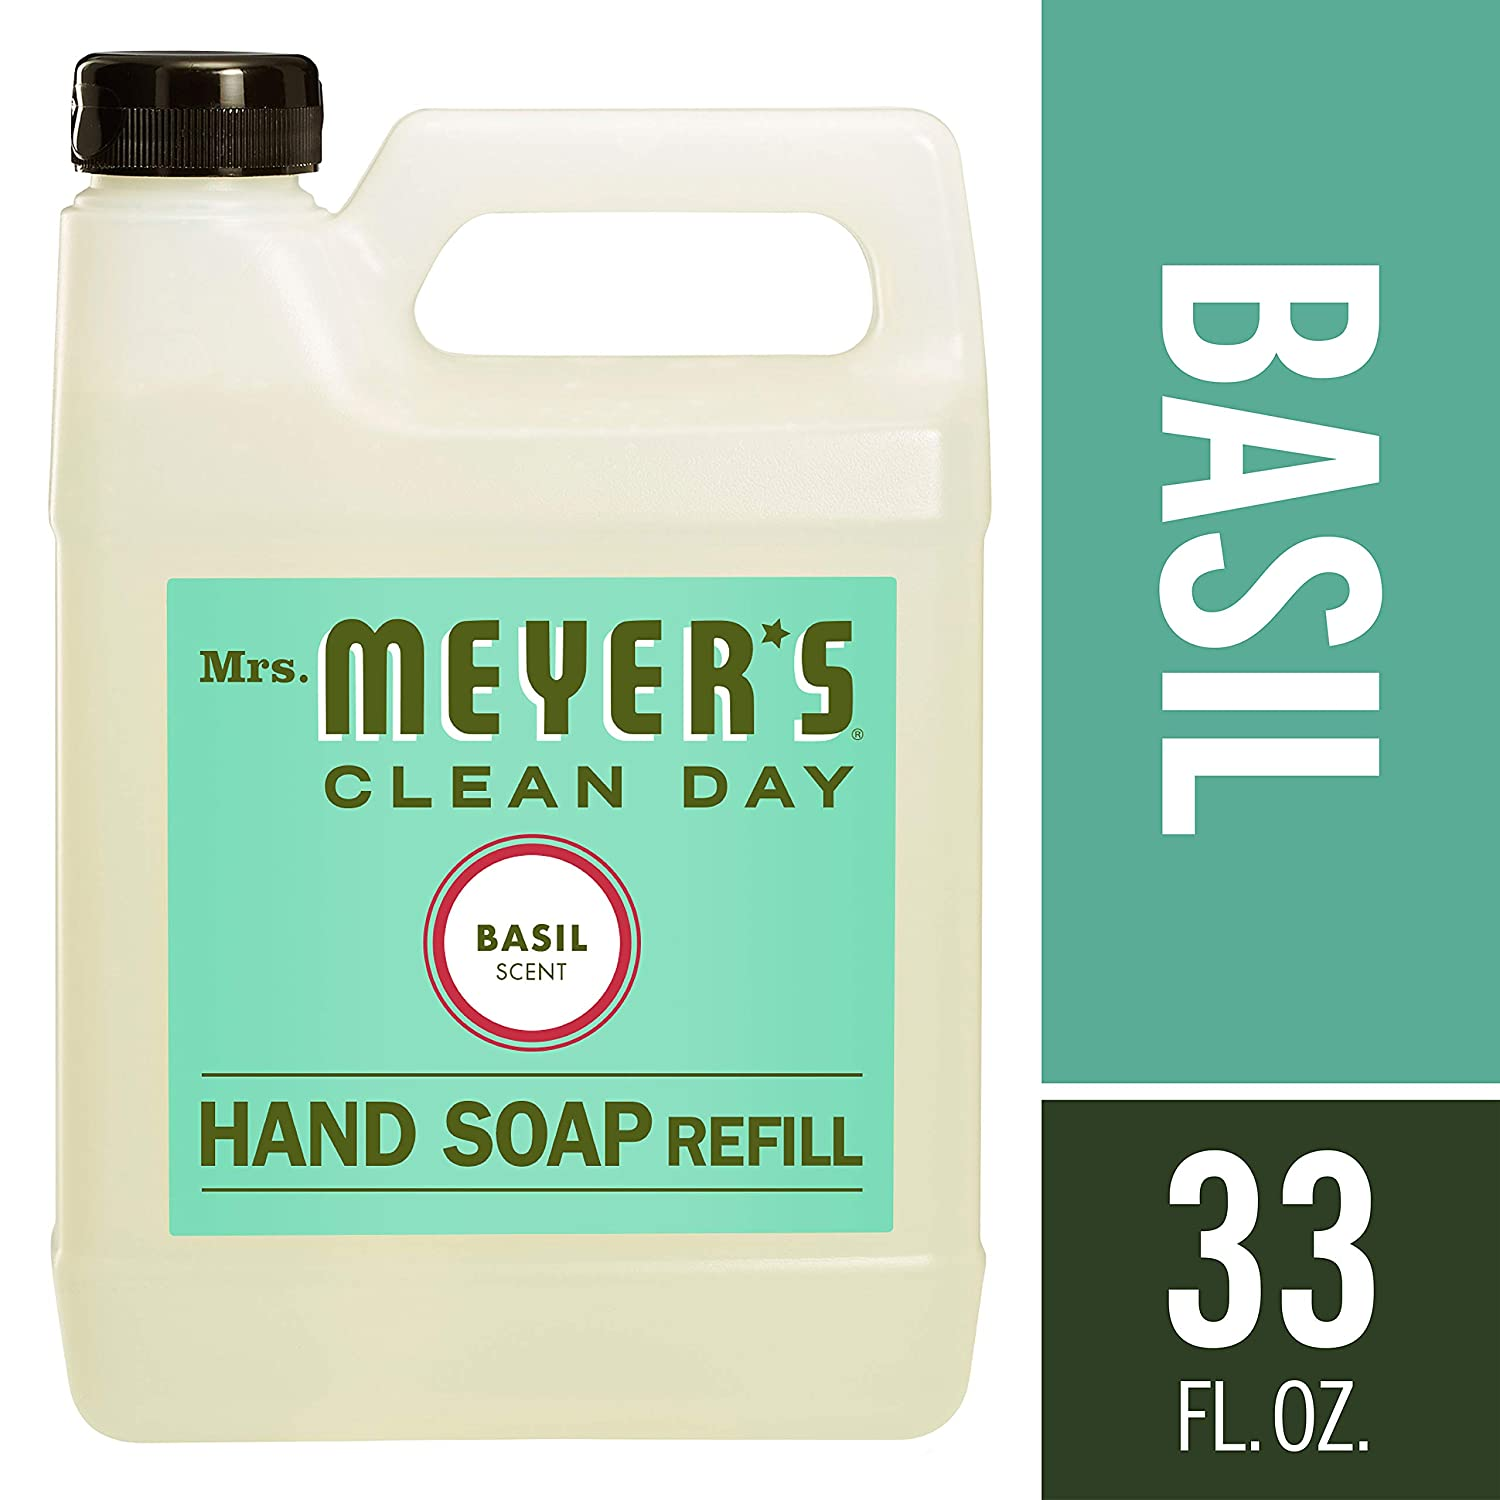 Mrs. Meyer's Liquid Hand Soap Refill, Basil, 33 Ounce Mrs. Meyer' s 14461